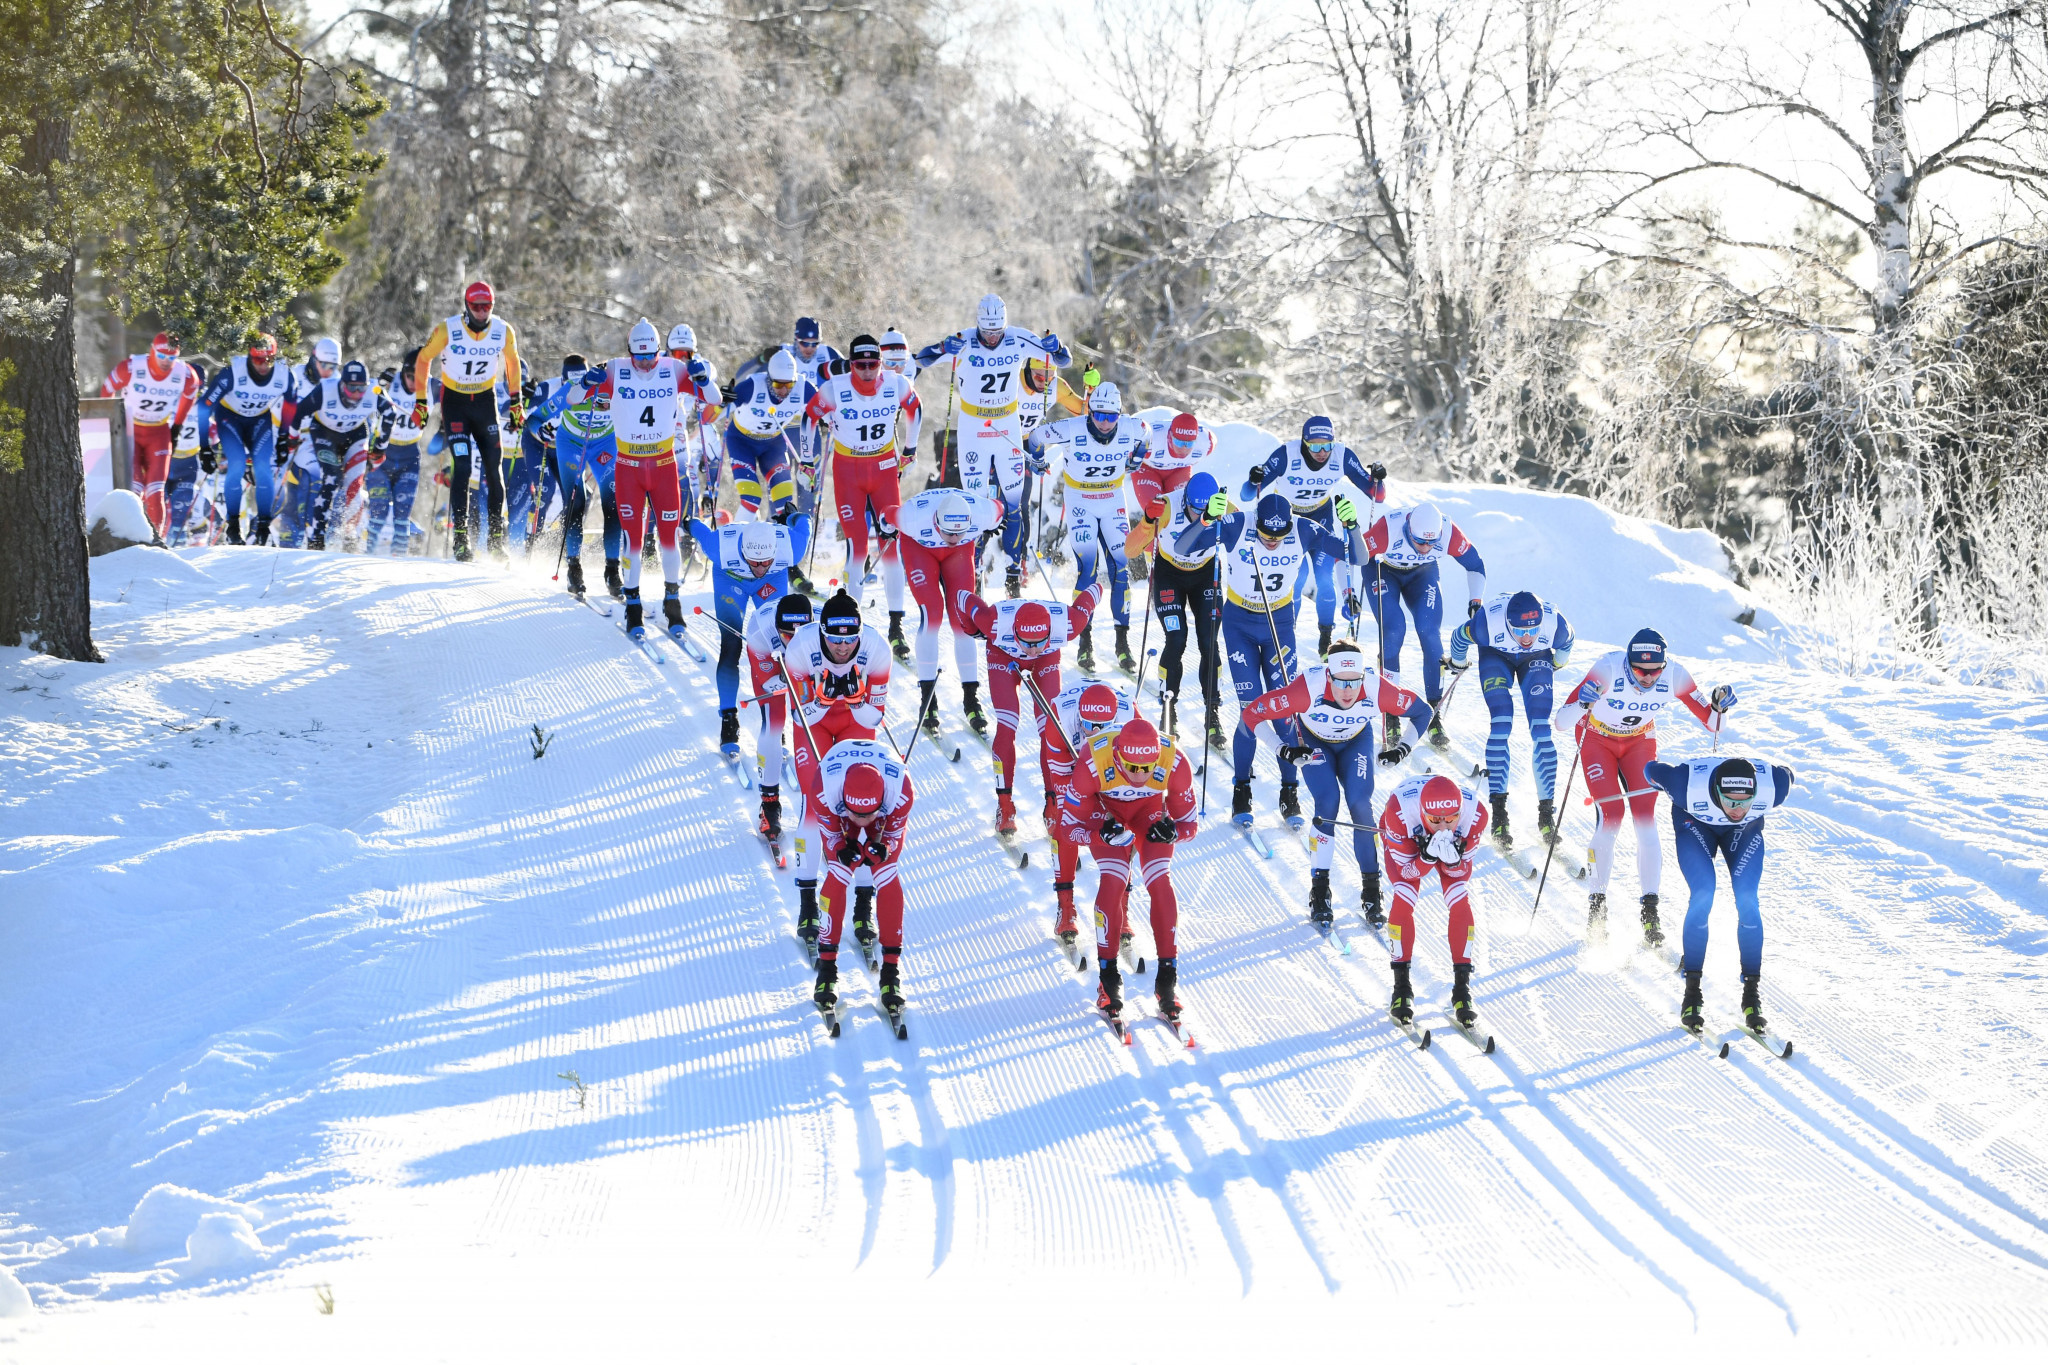 Engadin to host next FIS Cross-Country World Cup stage after Oslo's withdrawal